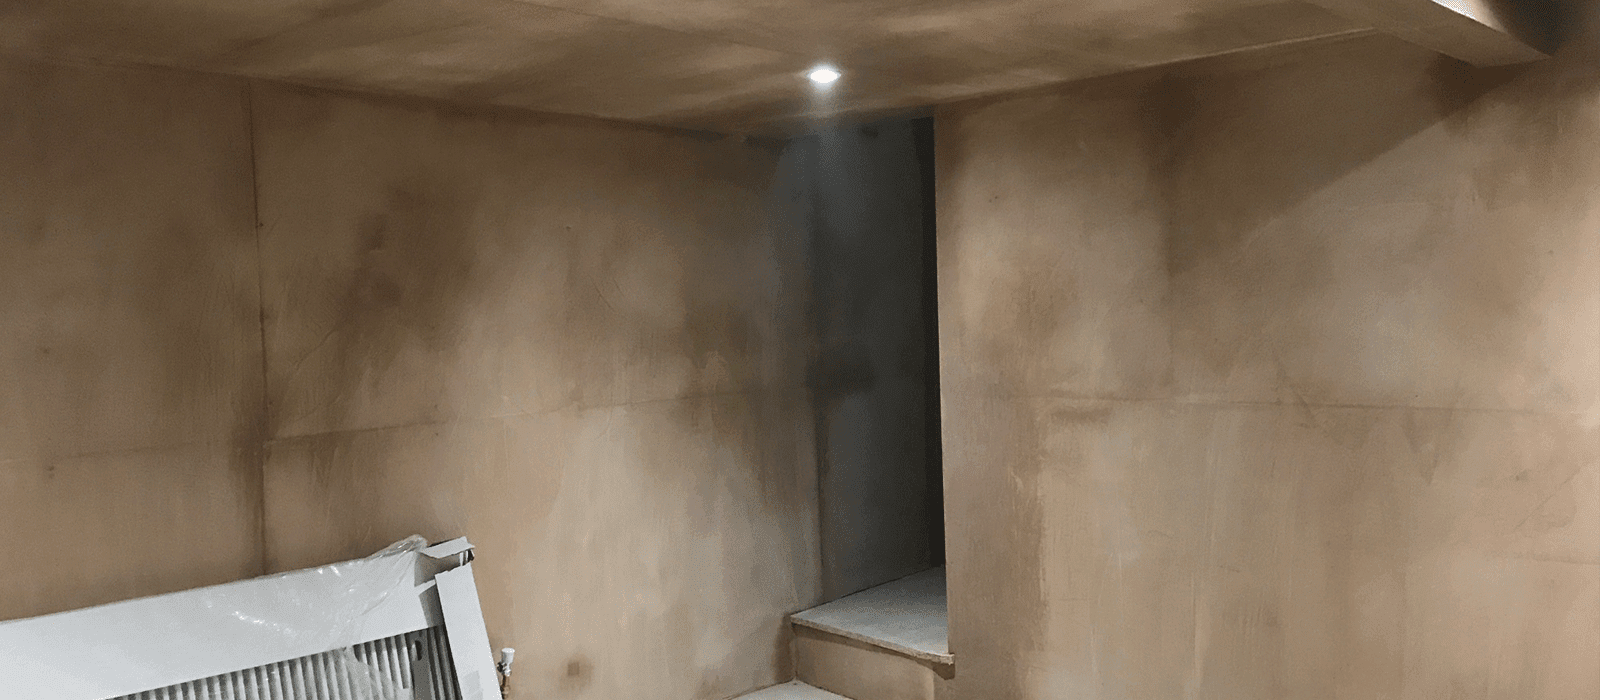 Usage of damp proofing membrane and complete finishes with plastering and associated works